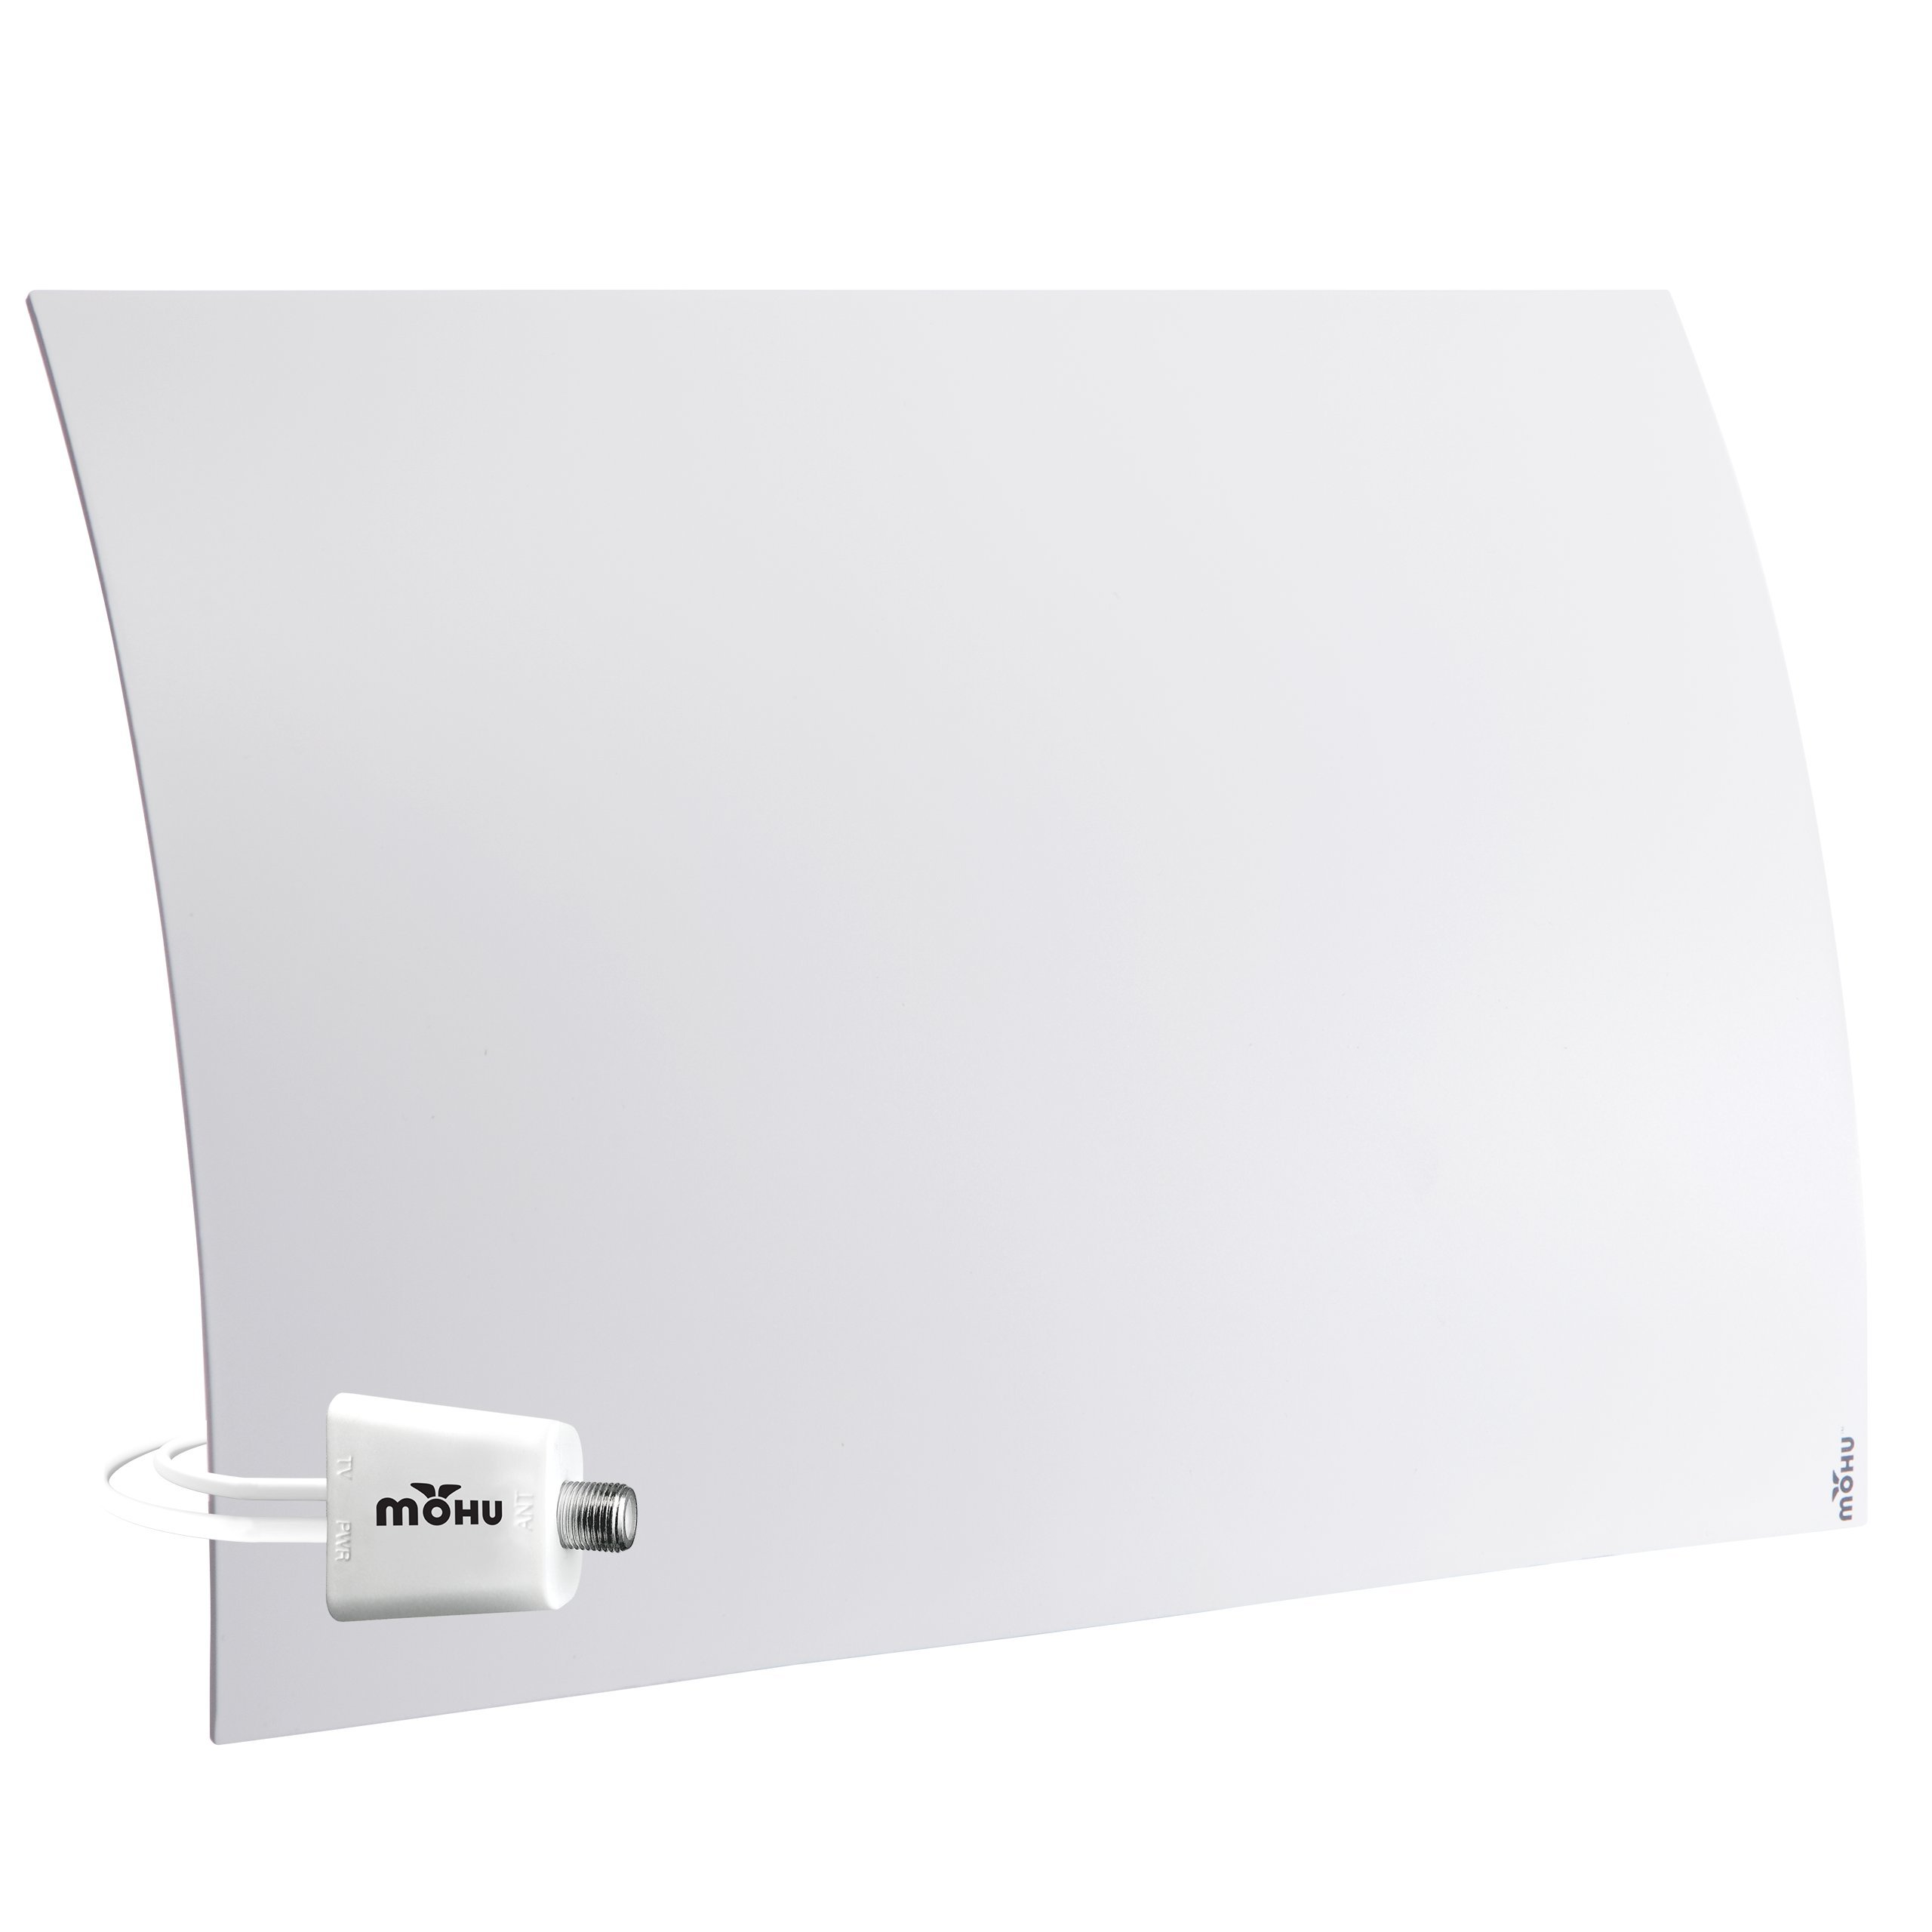 Mohu Curve 50 TV Antenna Indoor Amplified 60 Mile Range Modern Design 4K-Ready HDTV Premium Materials for Performance (MH-110959) by Mohu